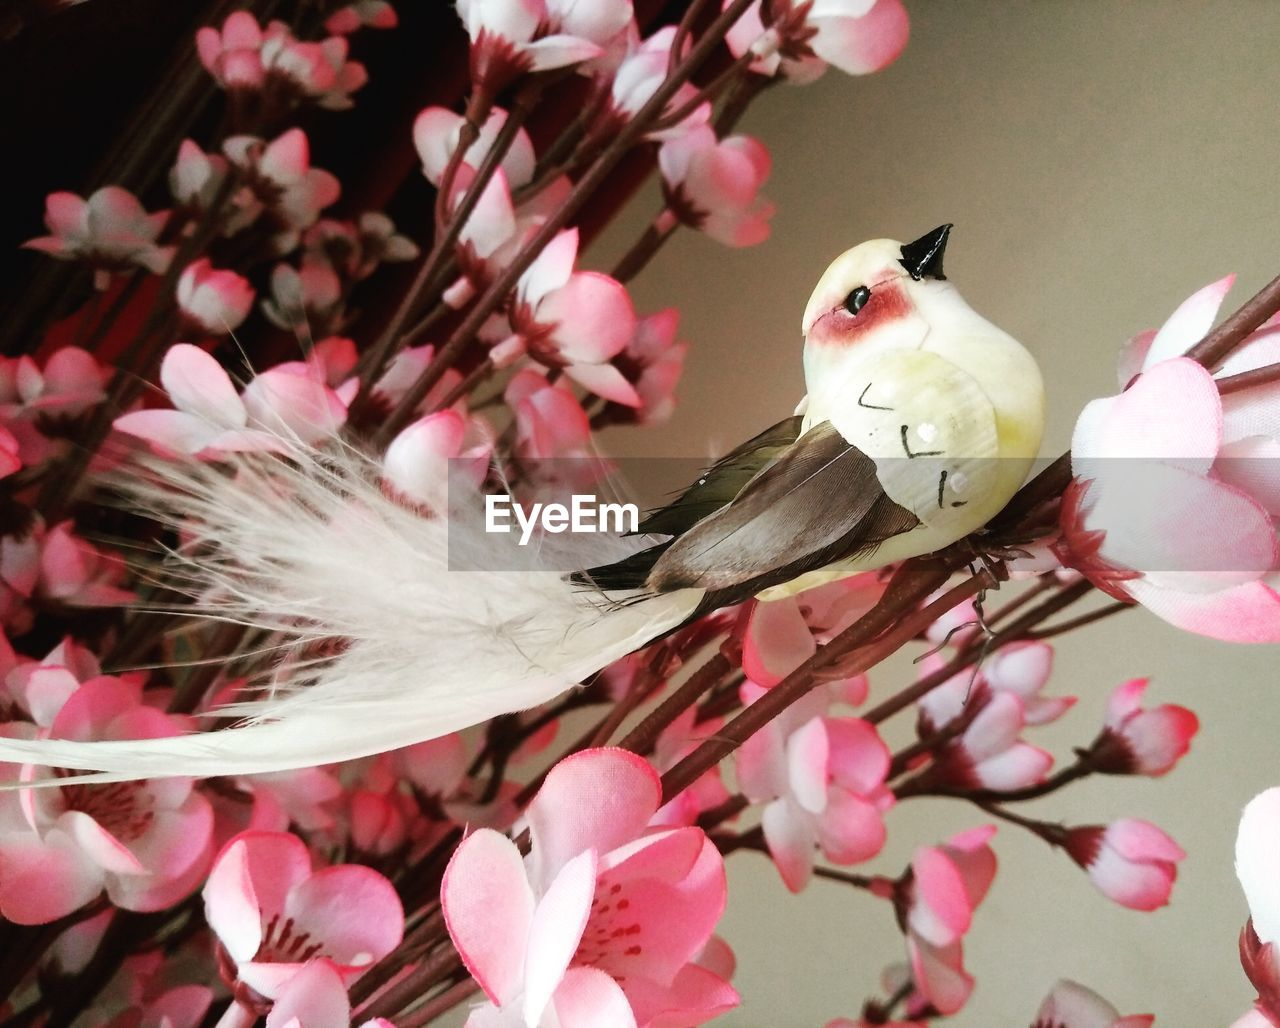 flower, flowering plant, plant, freshness, growth, fragility, beauty in nature, vulnerability, pink color, petal, close-up, flower head, one animal, inflorescence, blossom, nature, animal themes, animal, no people, branch, springtime, cherry blossom, outdoors, pollen, cherry tree